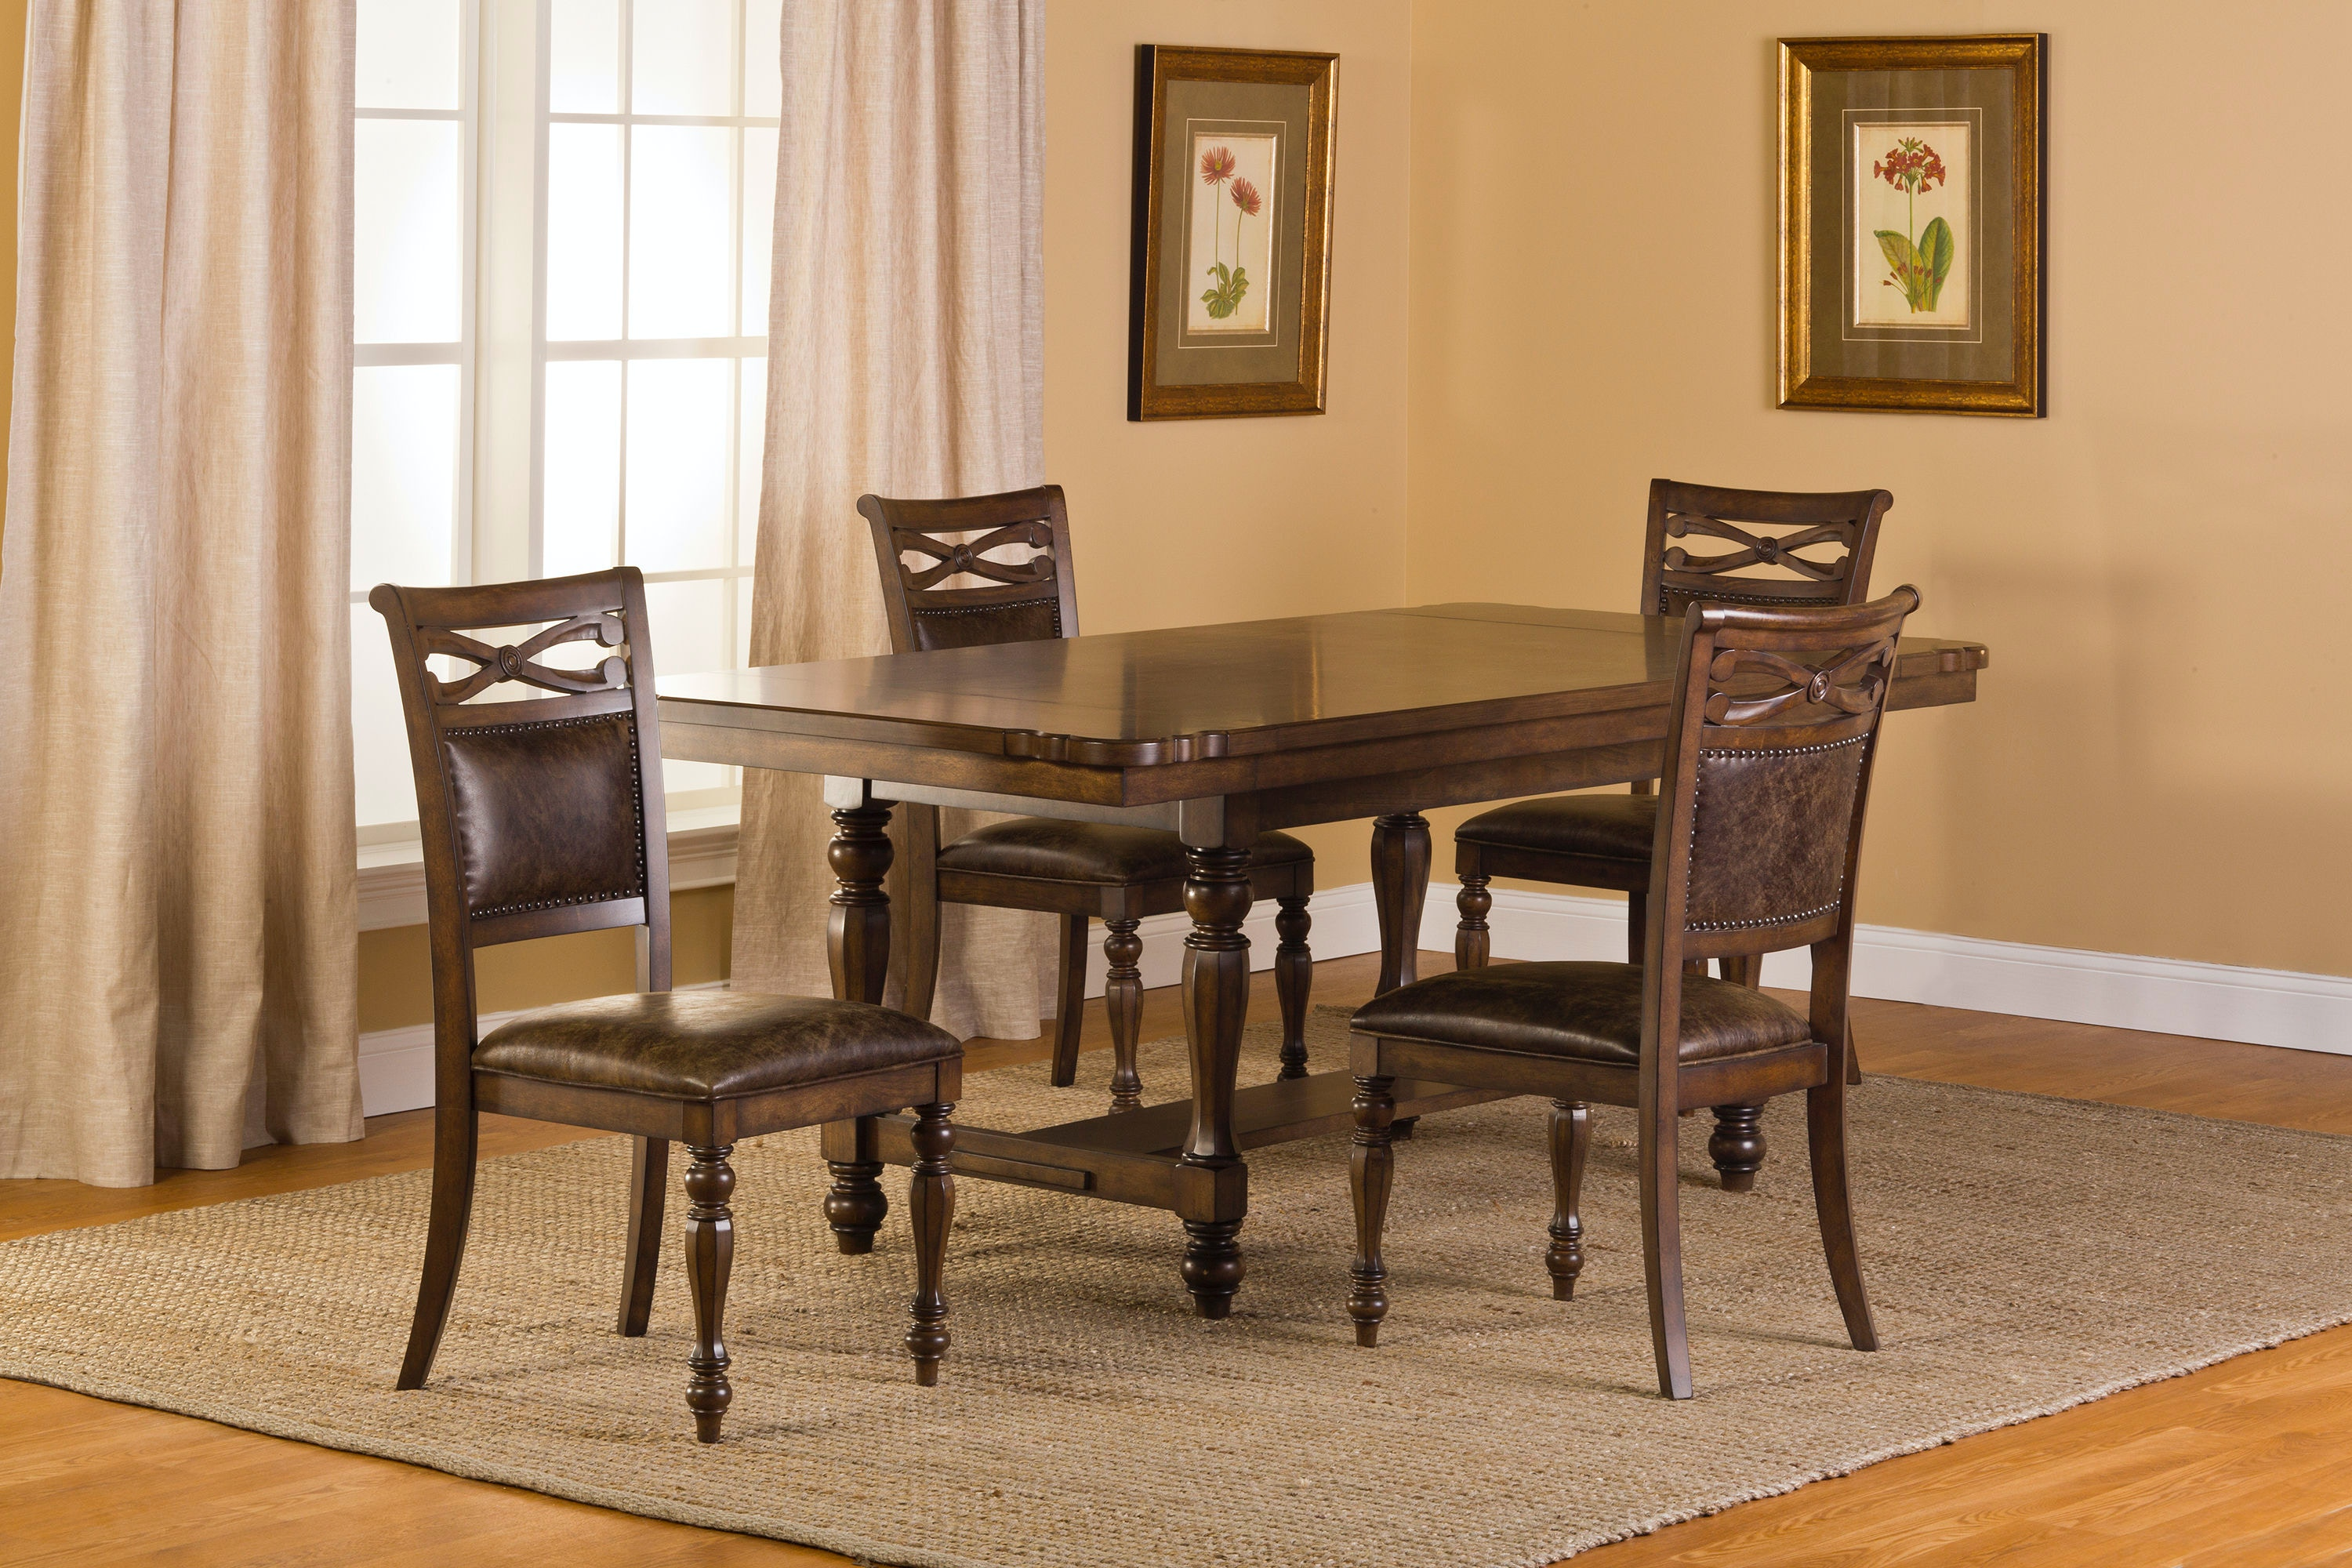 springs for dining chairs space saving table and hillsdale furniture room seaton